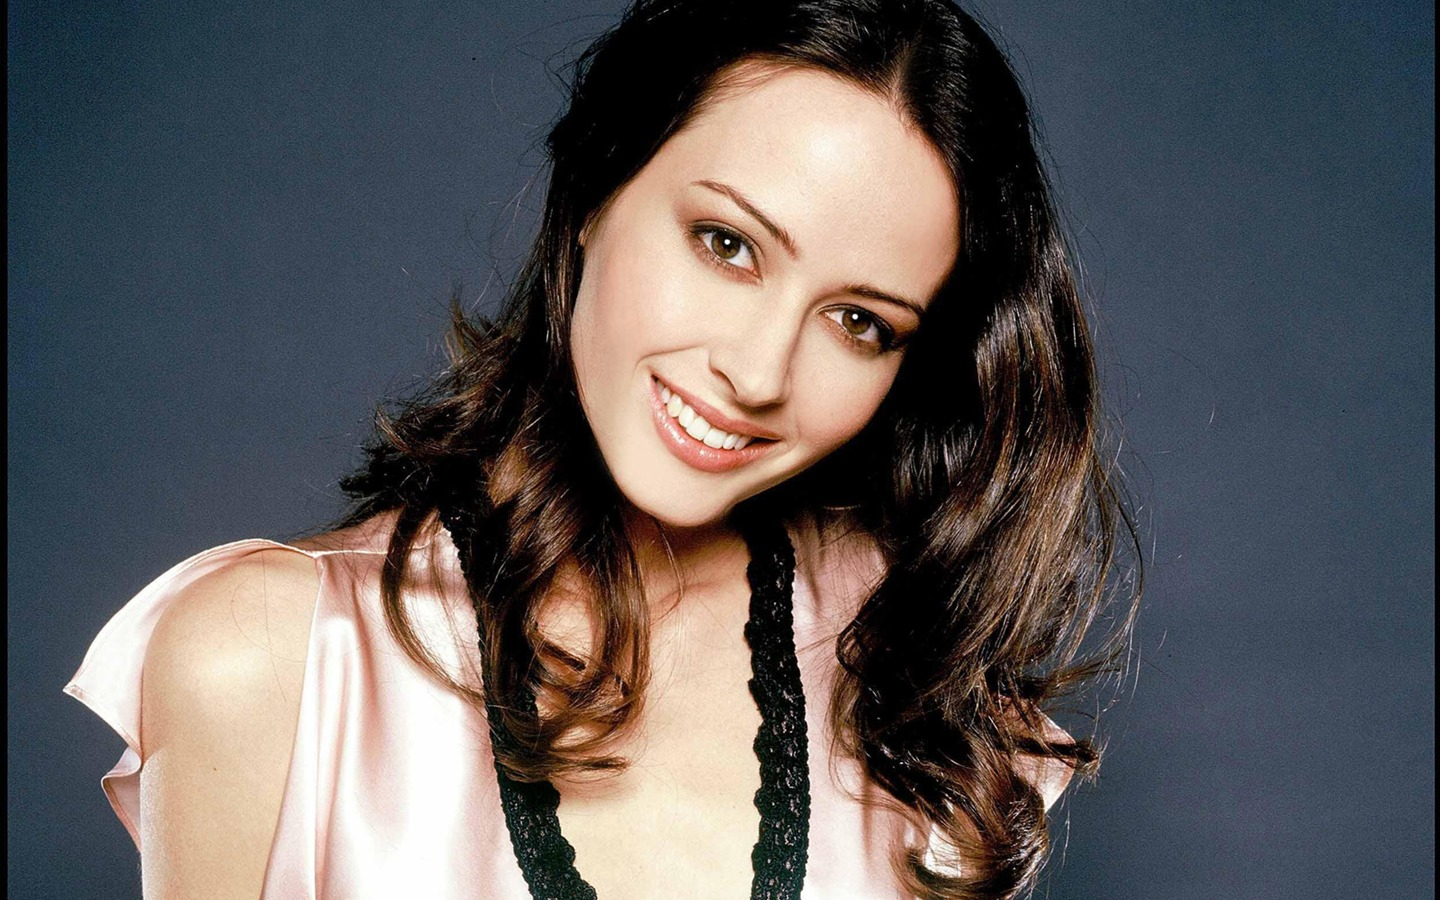 Amy Acker #016 - 1440x900 Wallpapers Pictures Photos Images